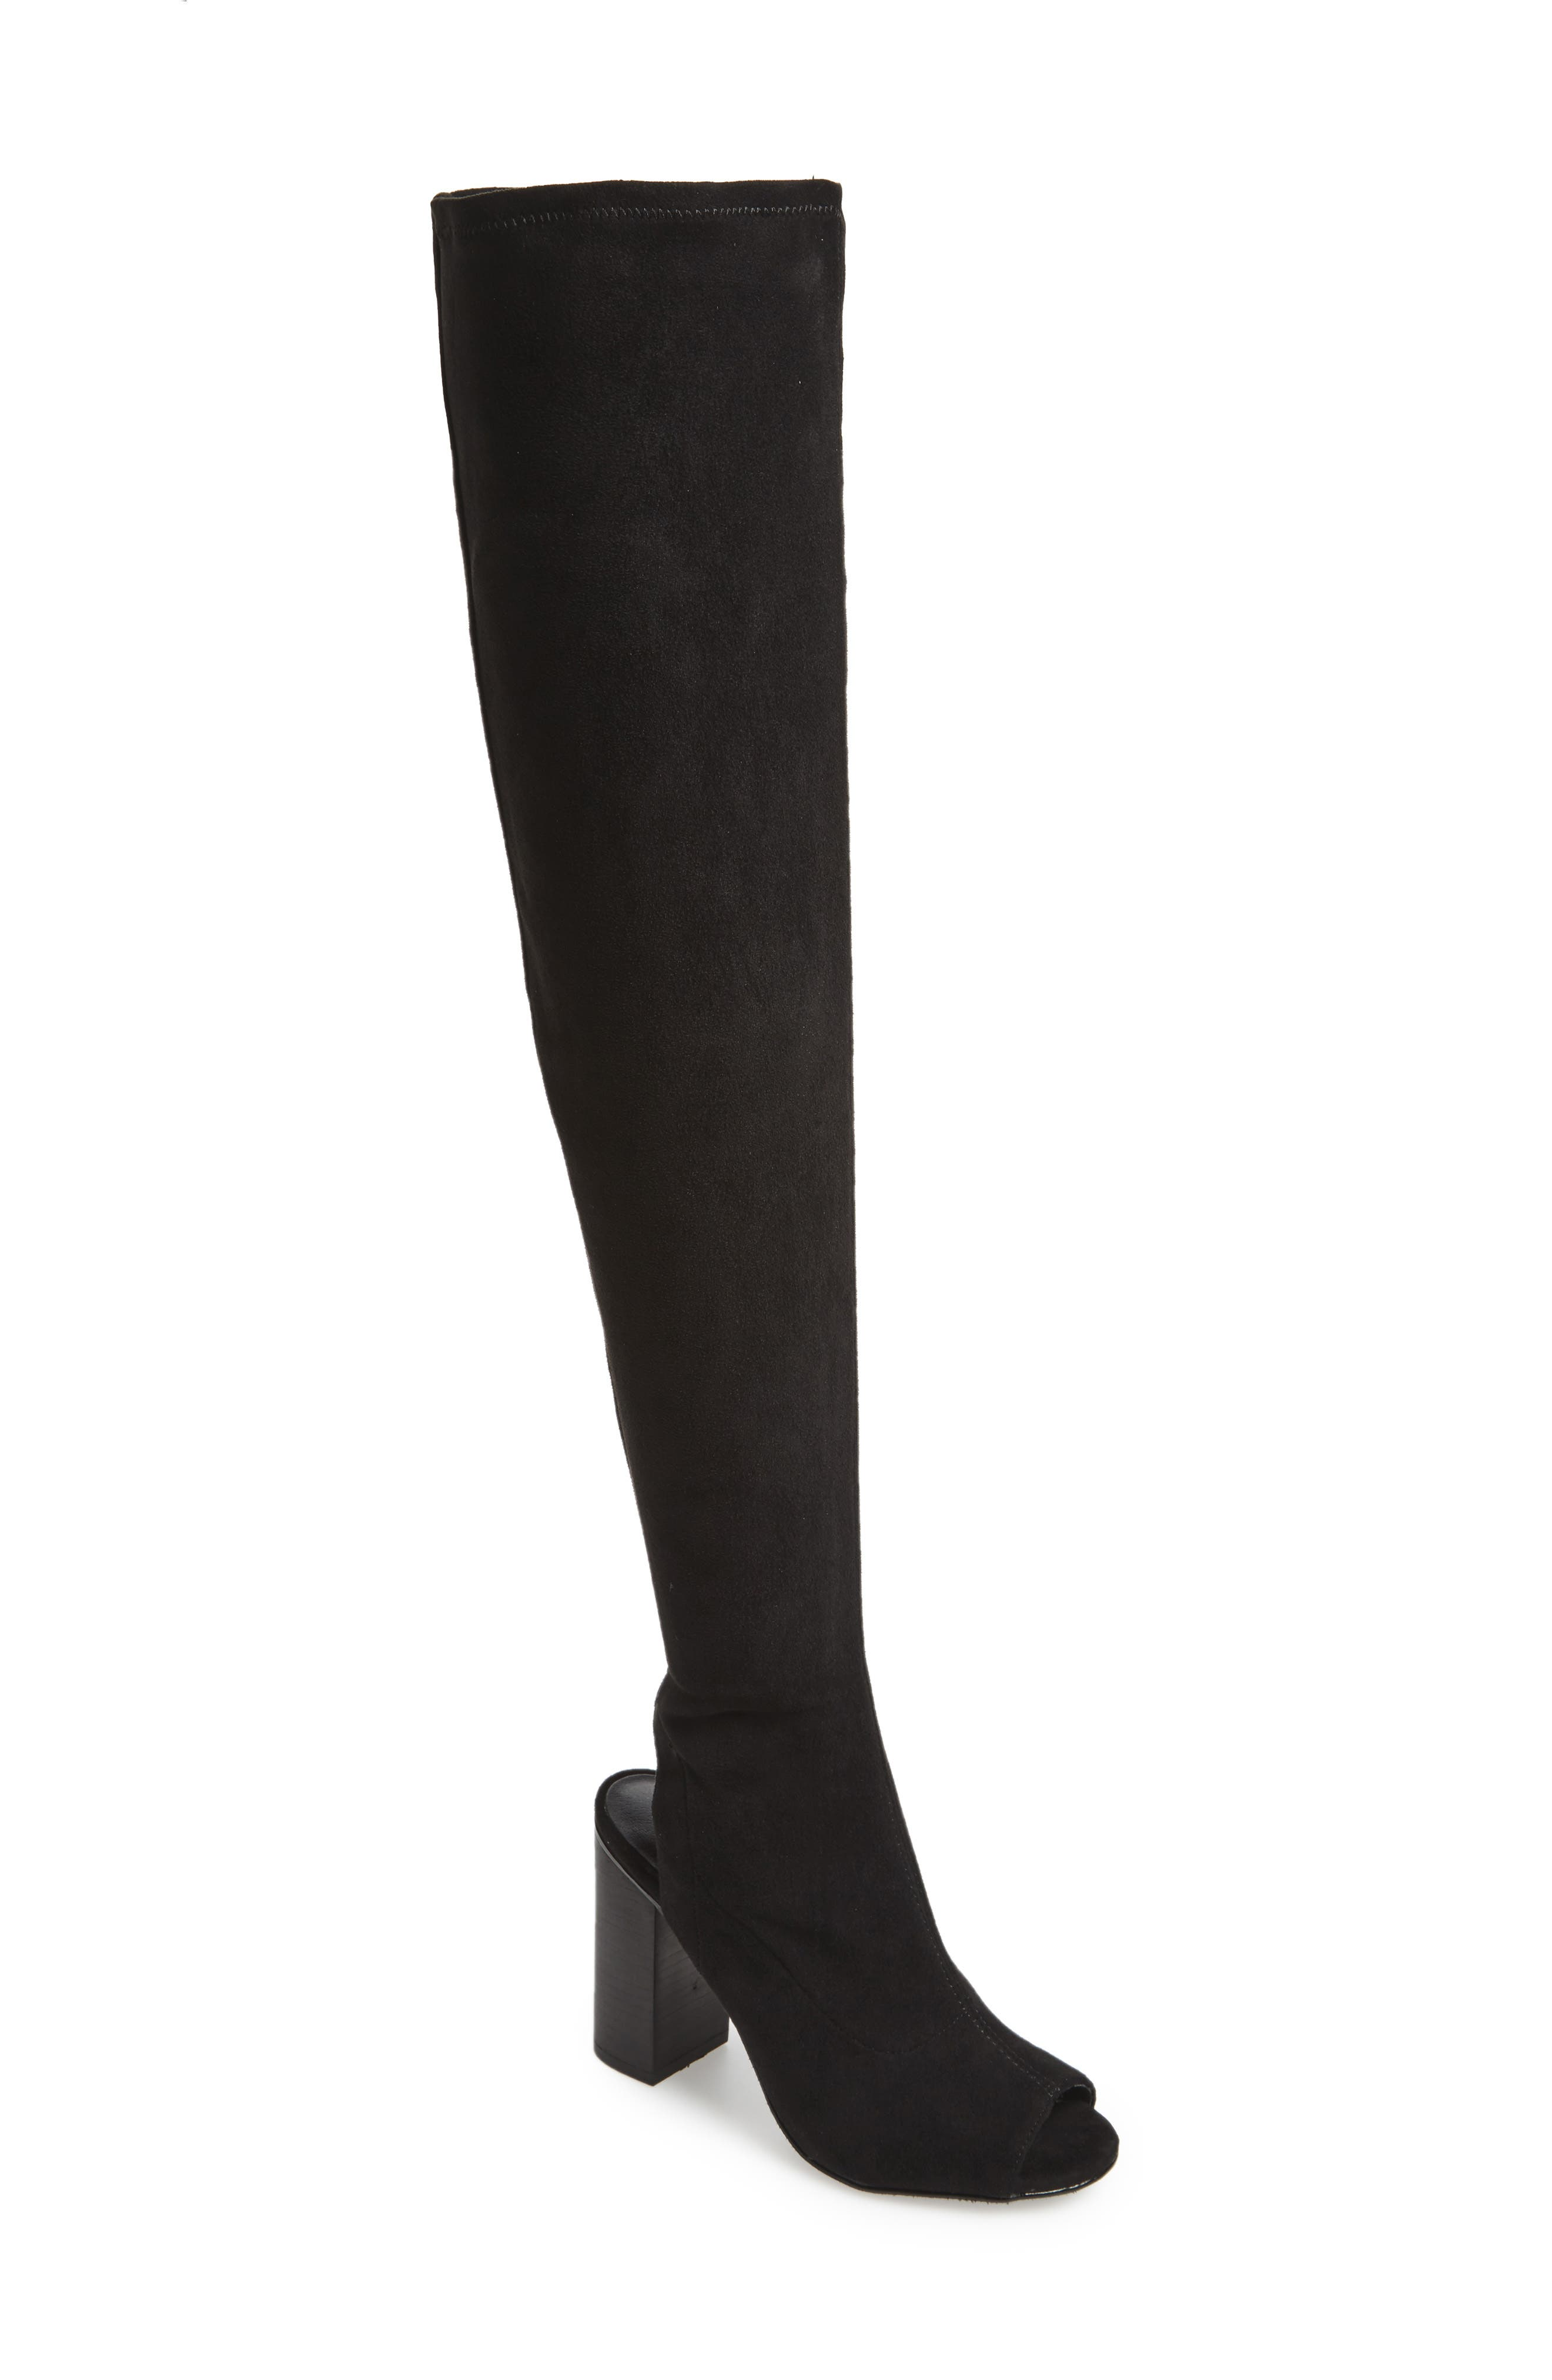 Robyn Cutout Over the Knee Boot,                             Main thumbnail 1, color,